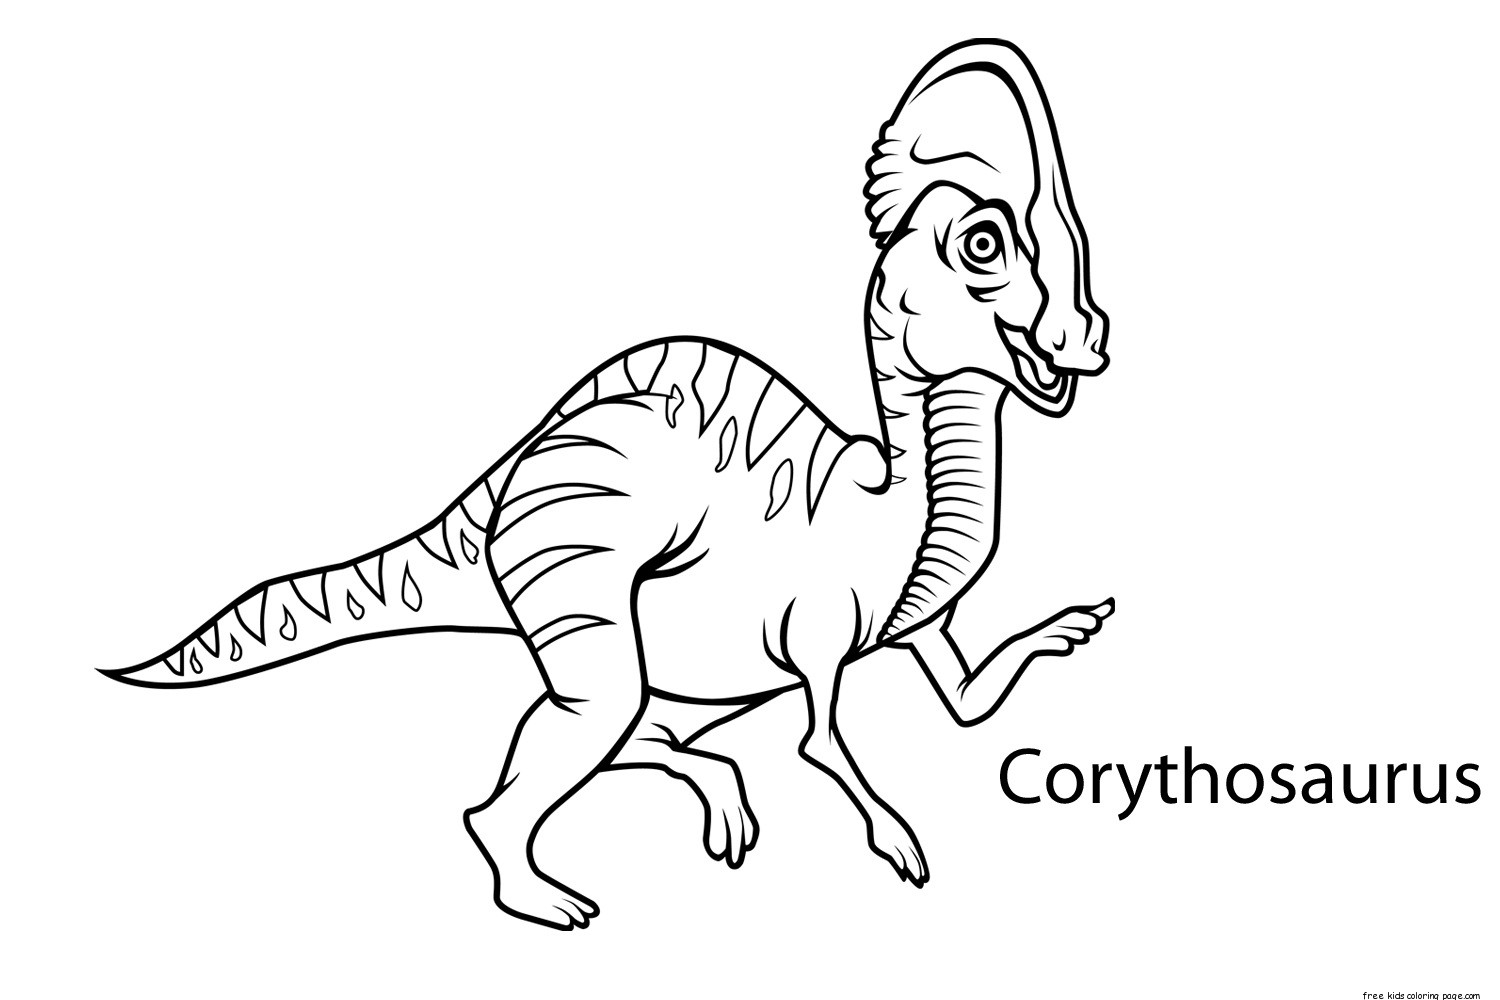 dinosaur coloring pages for toddlers - preschool dinosaur coloring worksheets corythosaurusfree